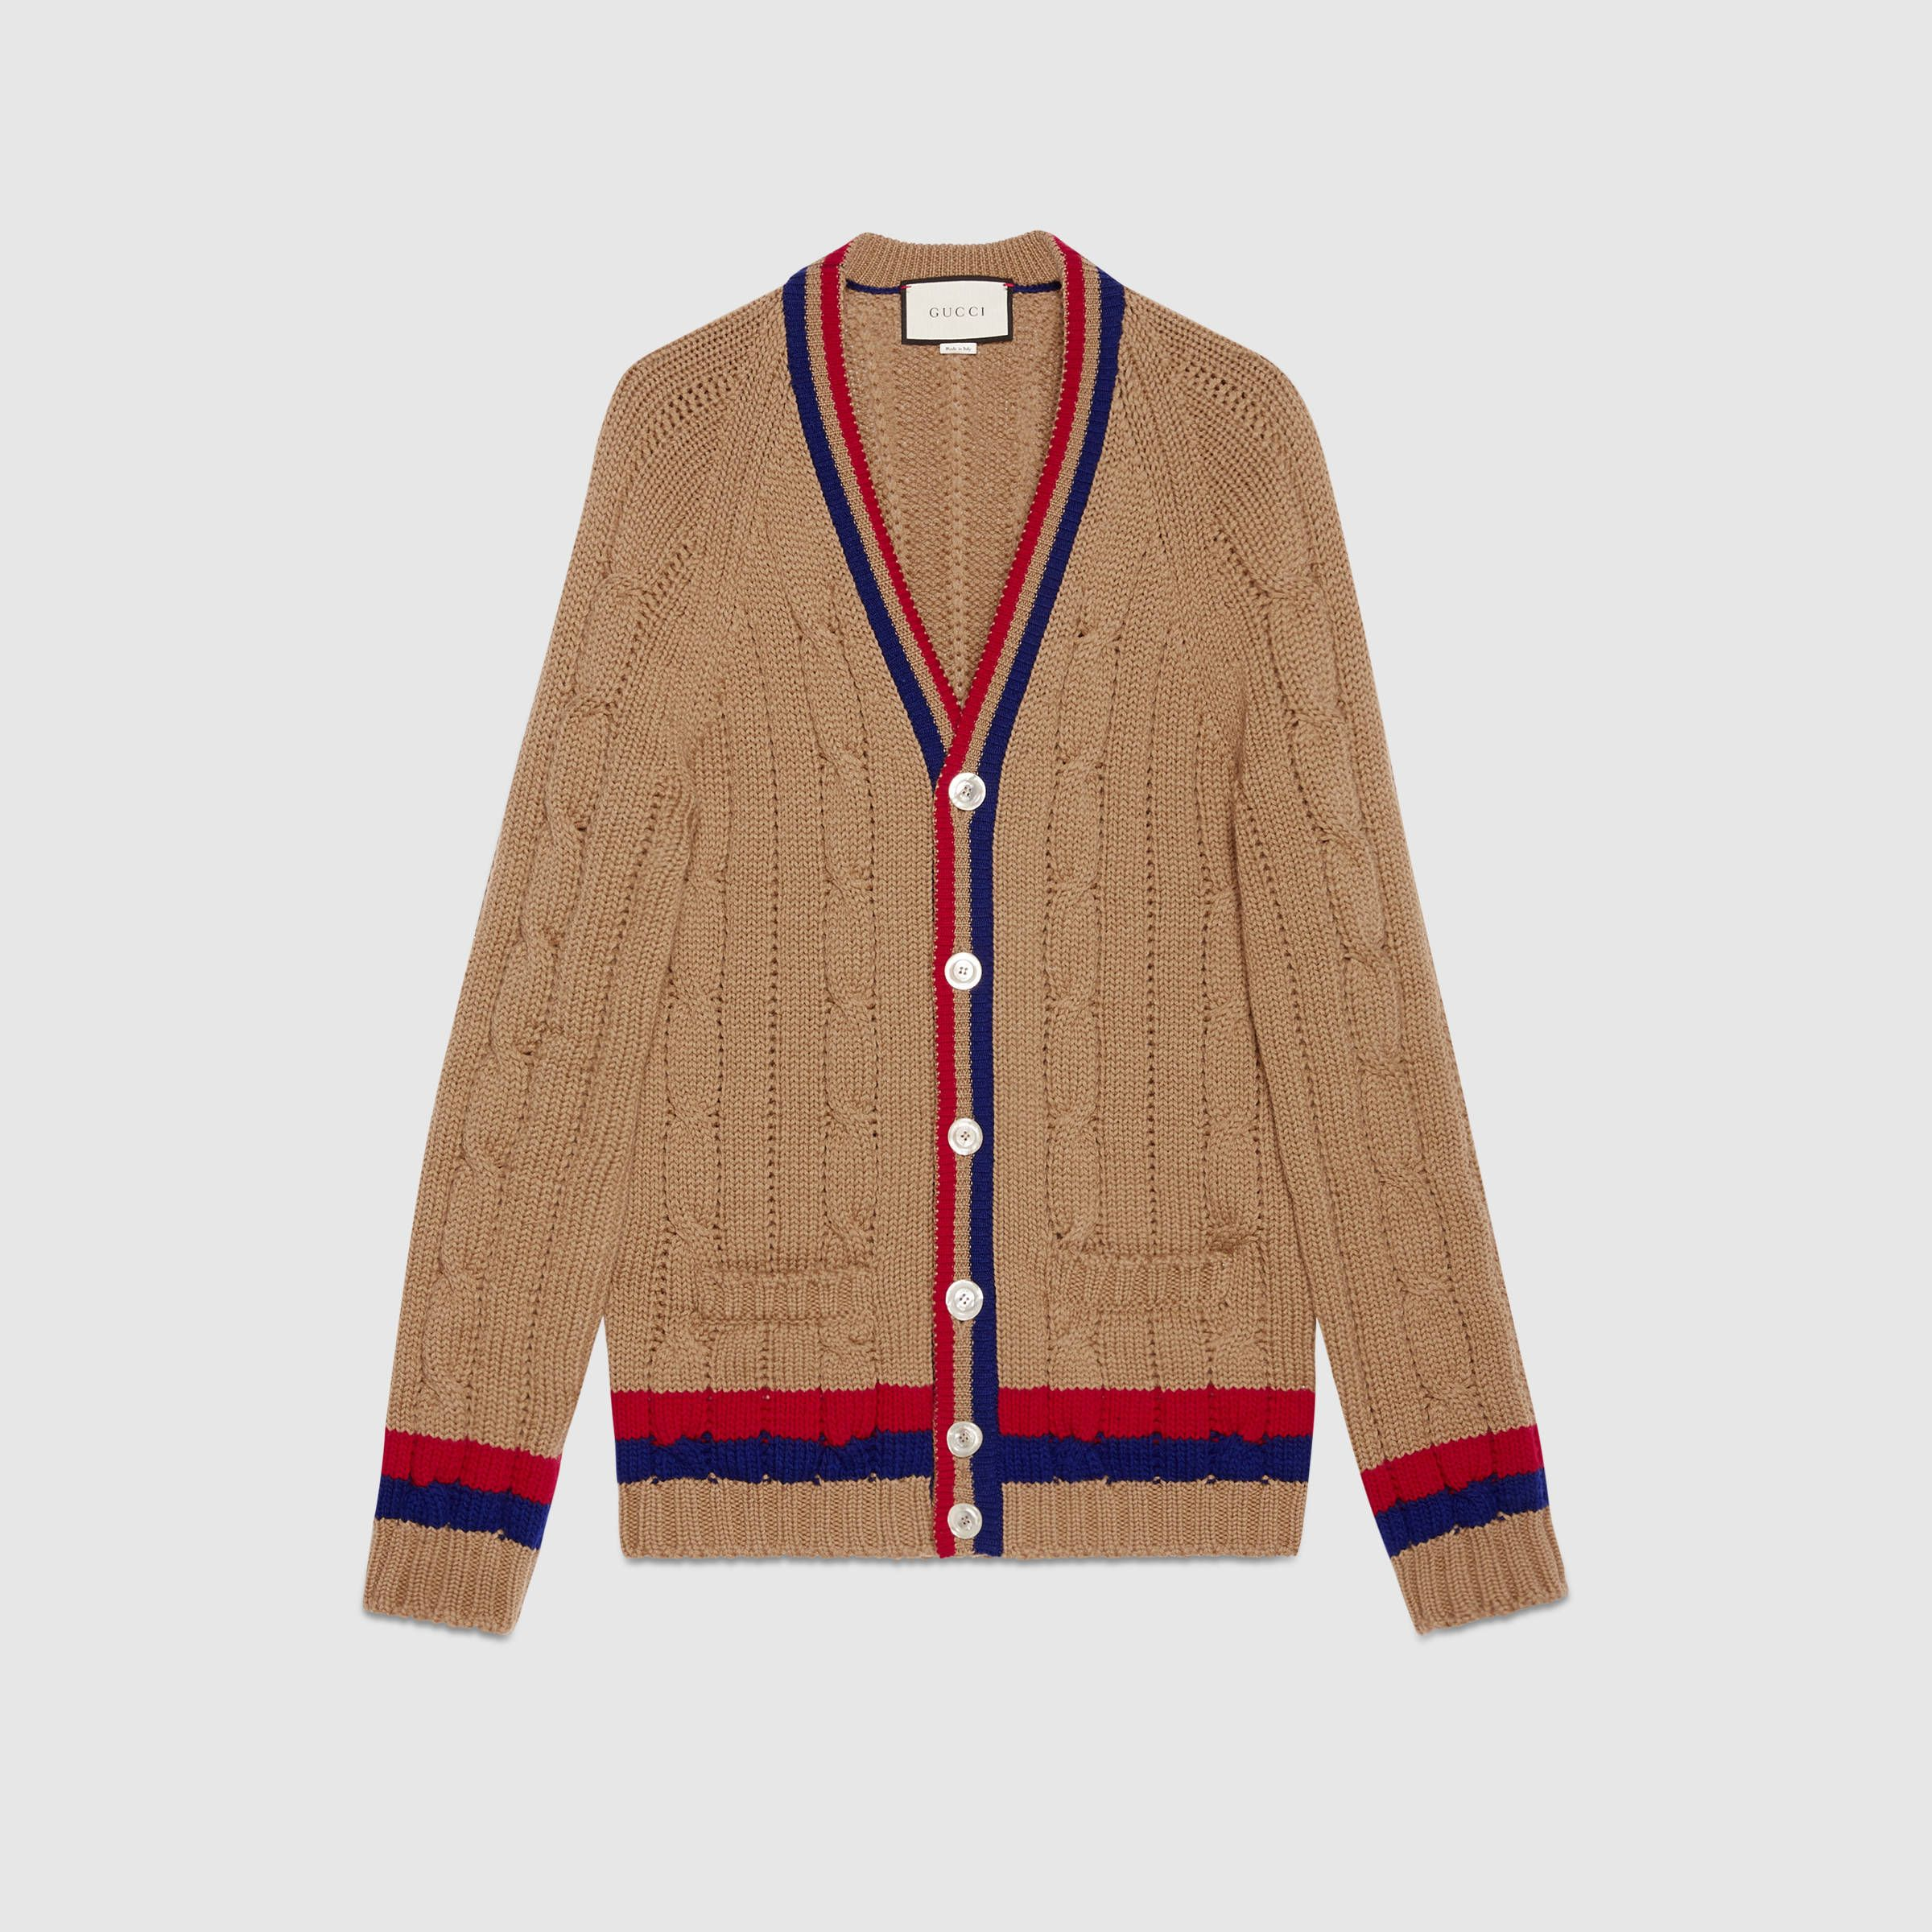 Wool cable-knit cardigan | Threads and Threats | Pinterest ...